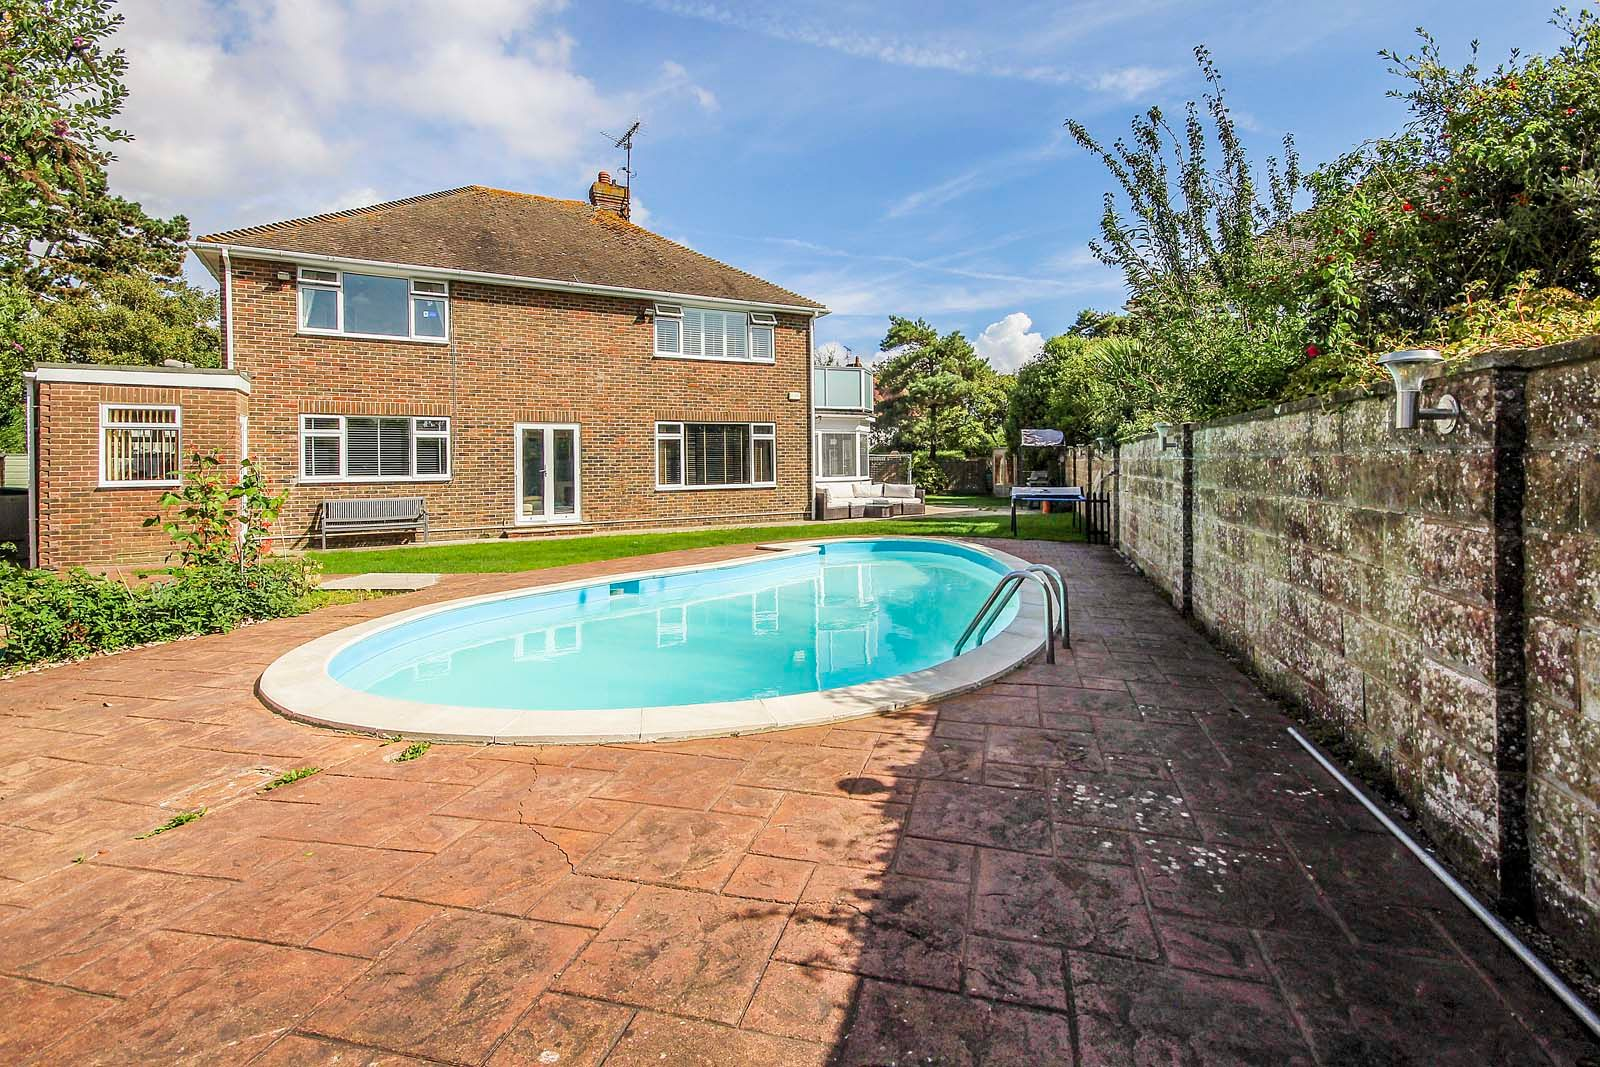 4 bed House for sale in Rustington - Rear picture (Property Image 18)